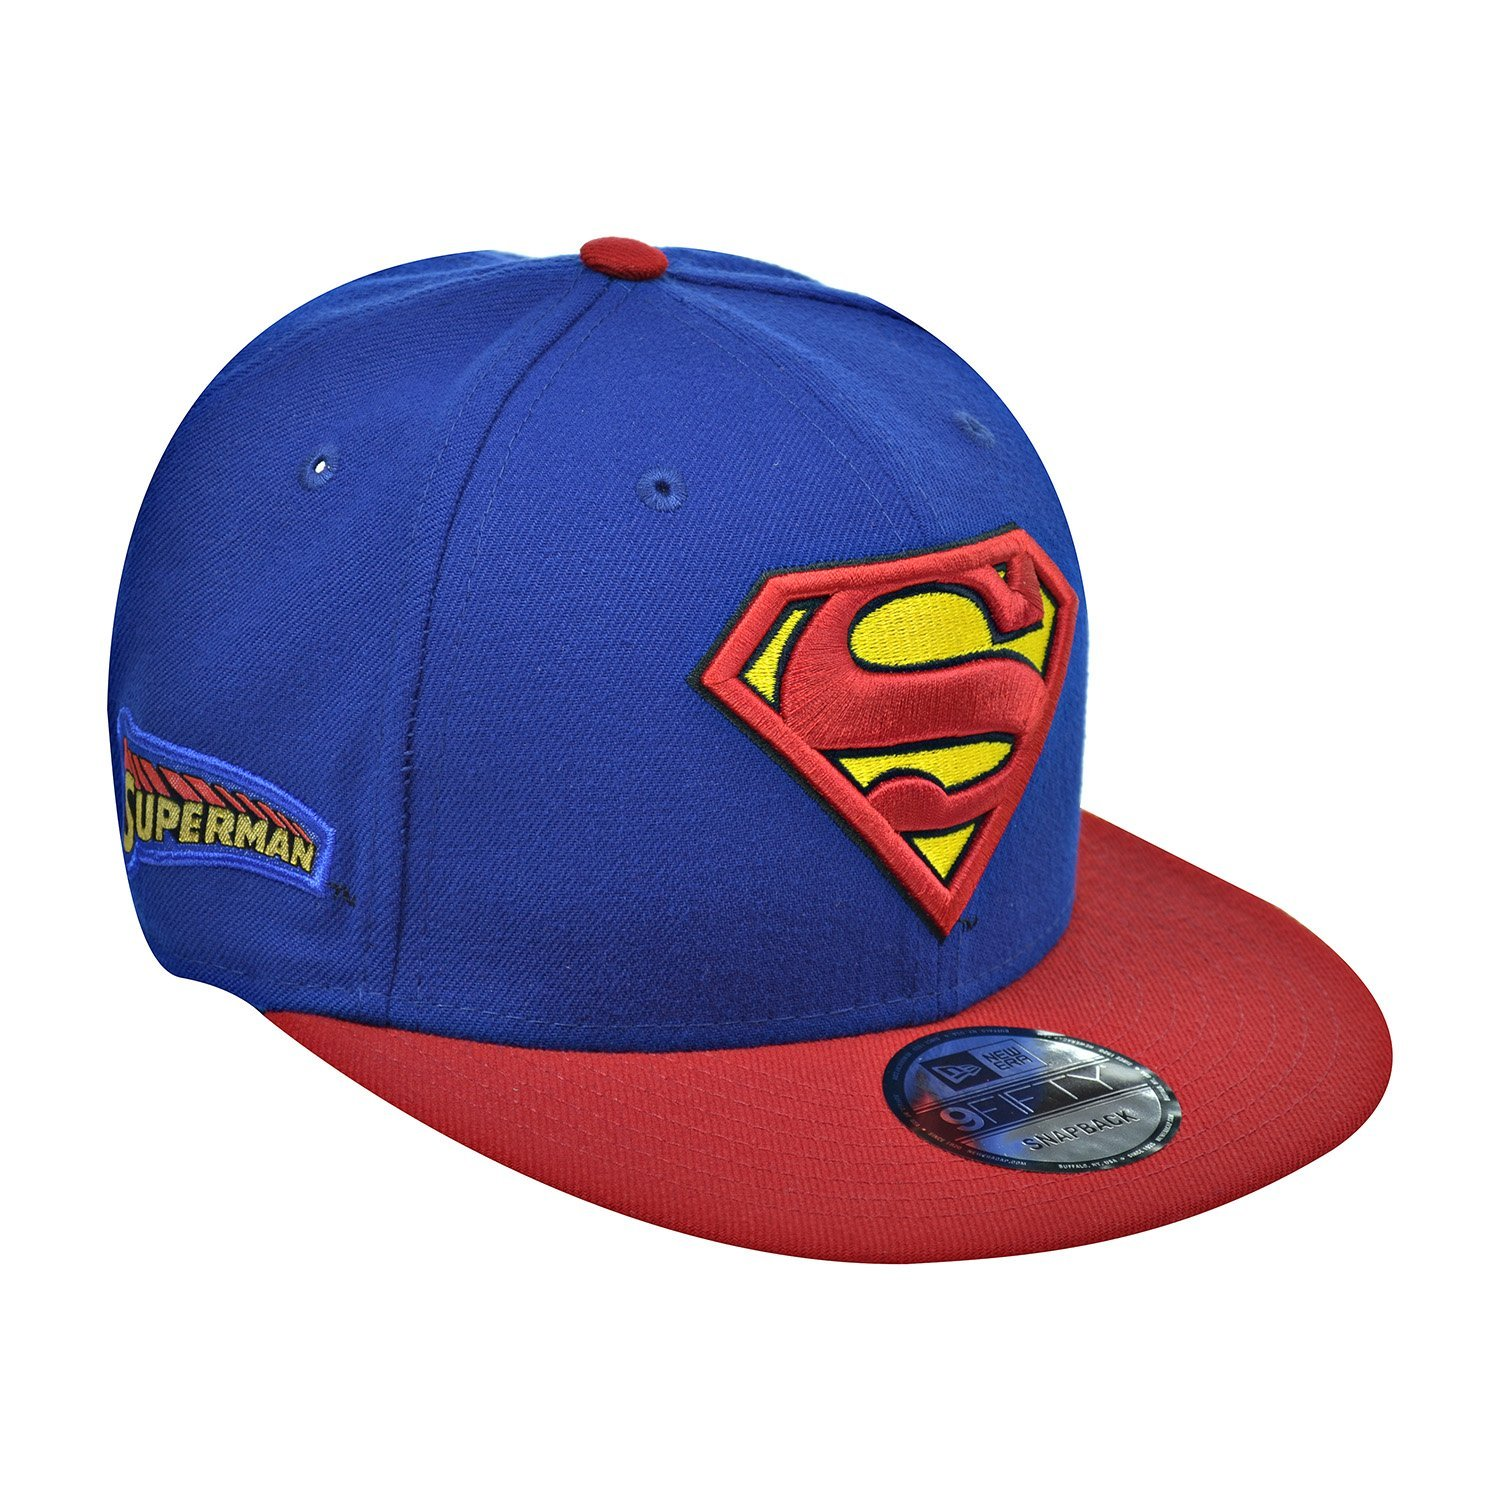 4c77f07de86 Get Quotations · New Era Superman Team Patcher 9Fifty Men s Snapback Hat  Cap Blue Red 80401381